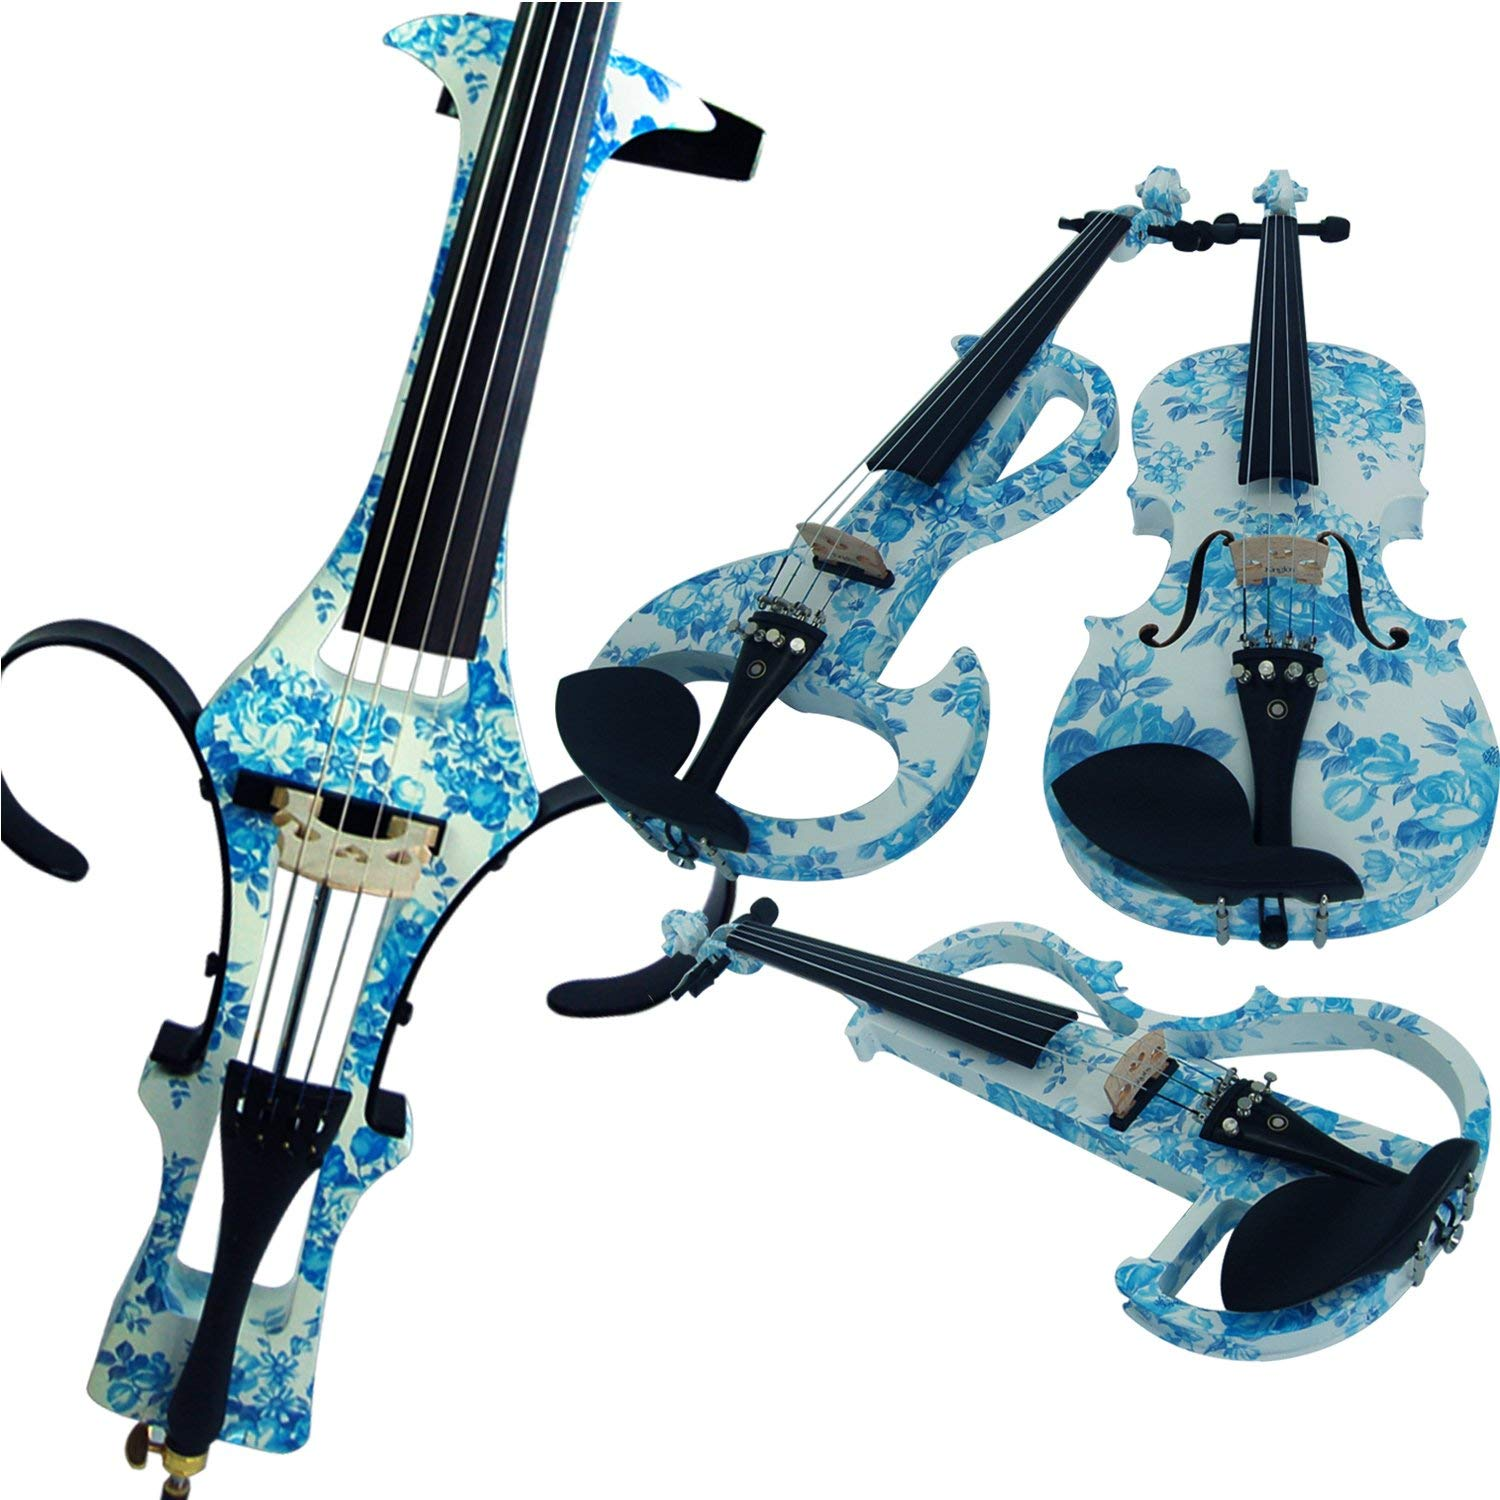 Aliyes Acoustic Violins Full Size Solid Wood Intermediate White&Blue Flowers Violin Kit For Beginners With Case,Shoulder Rest,Bow,Rosin,Extra Bridge And Strings(ALYSDS-1201)